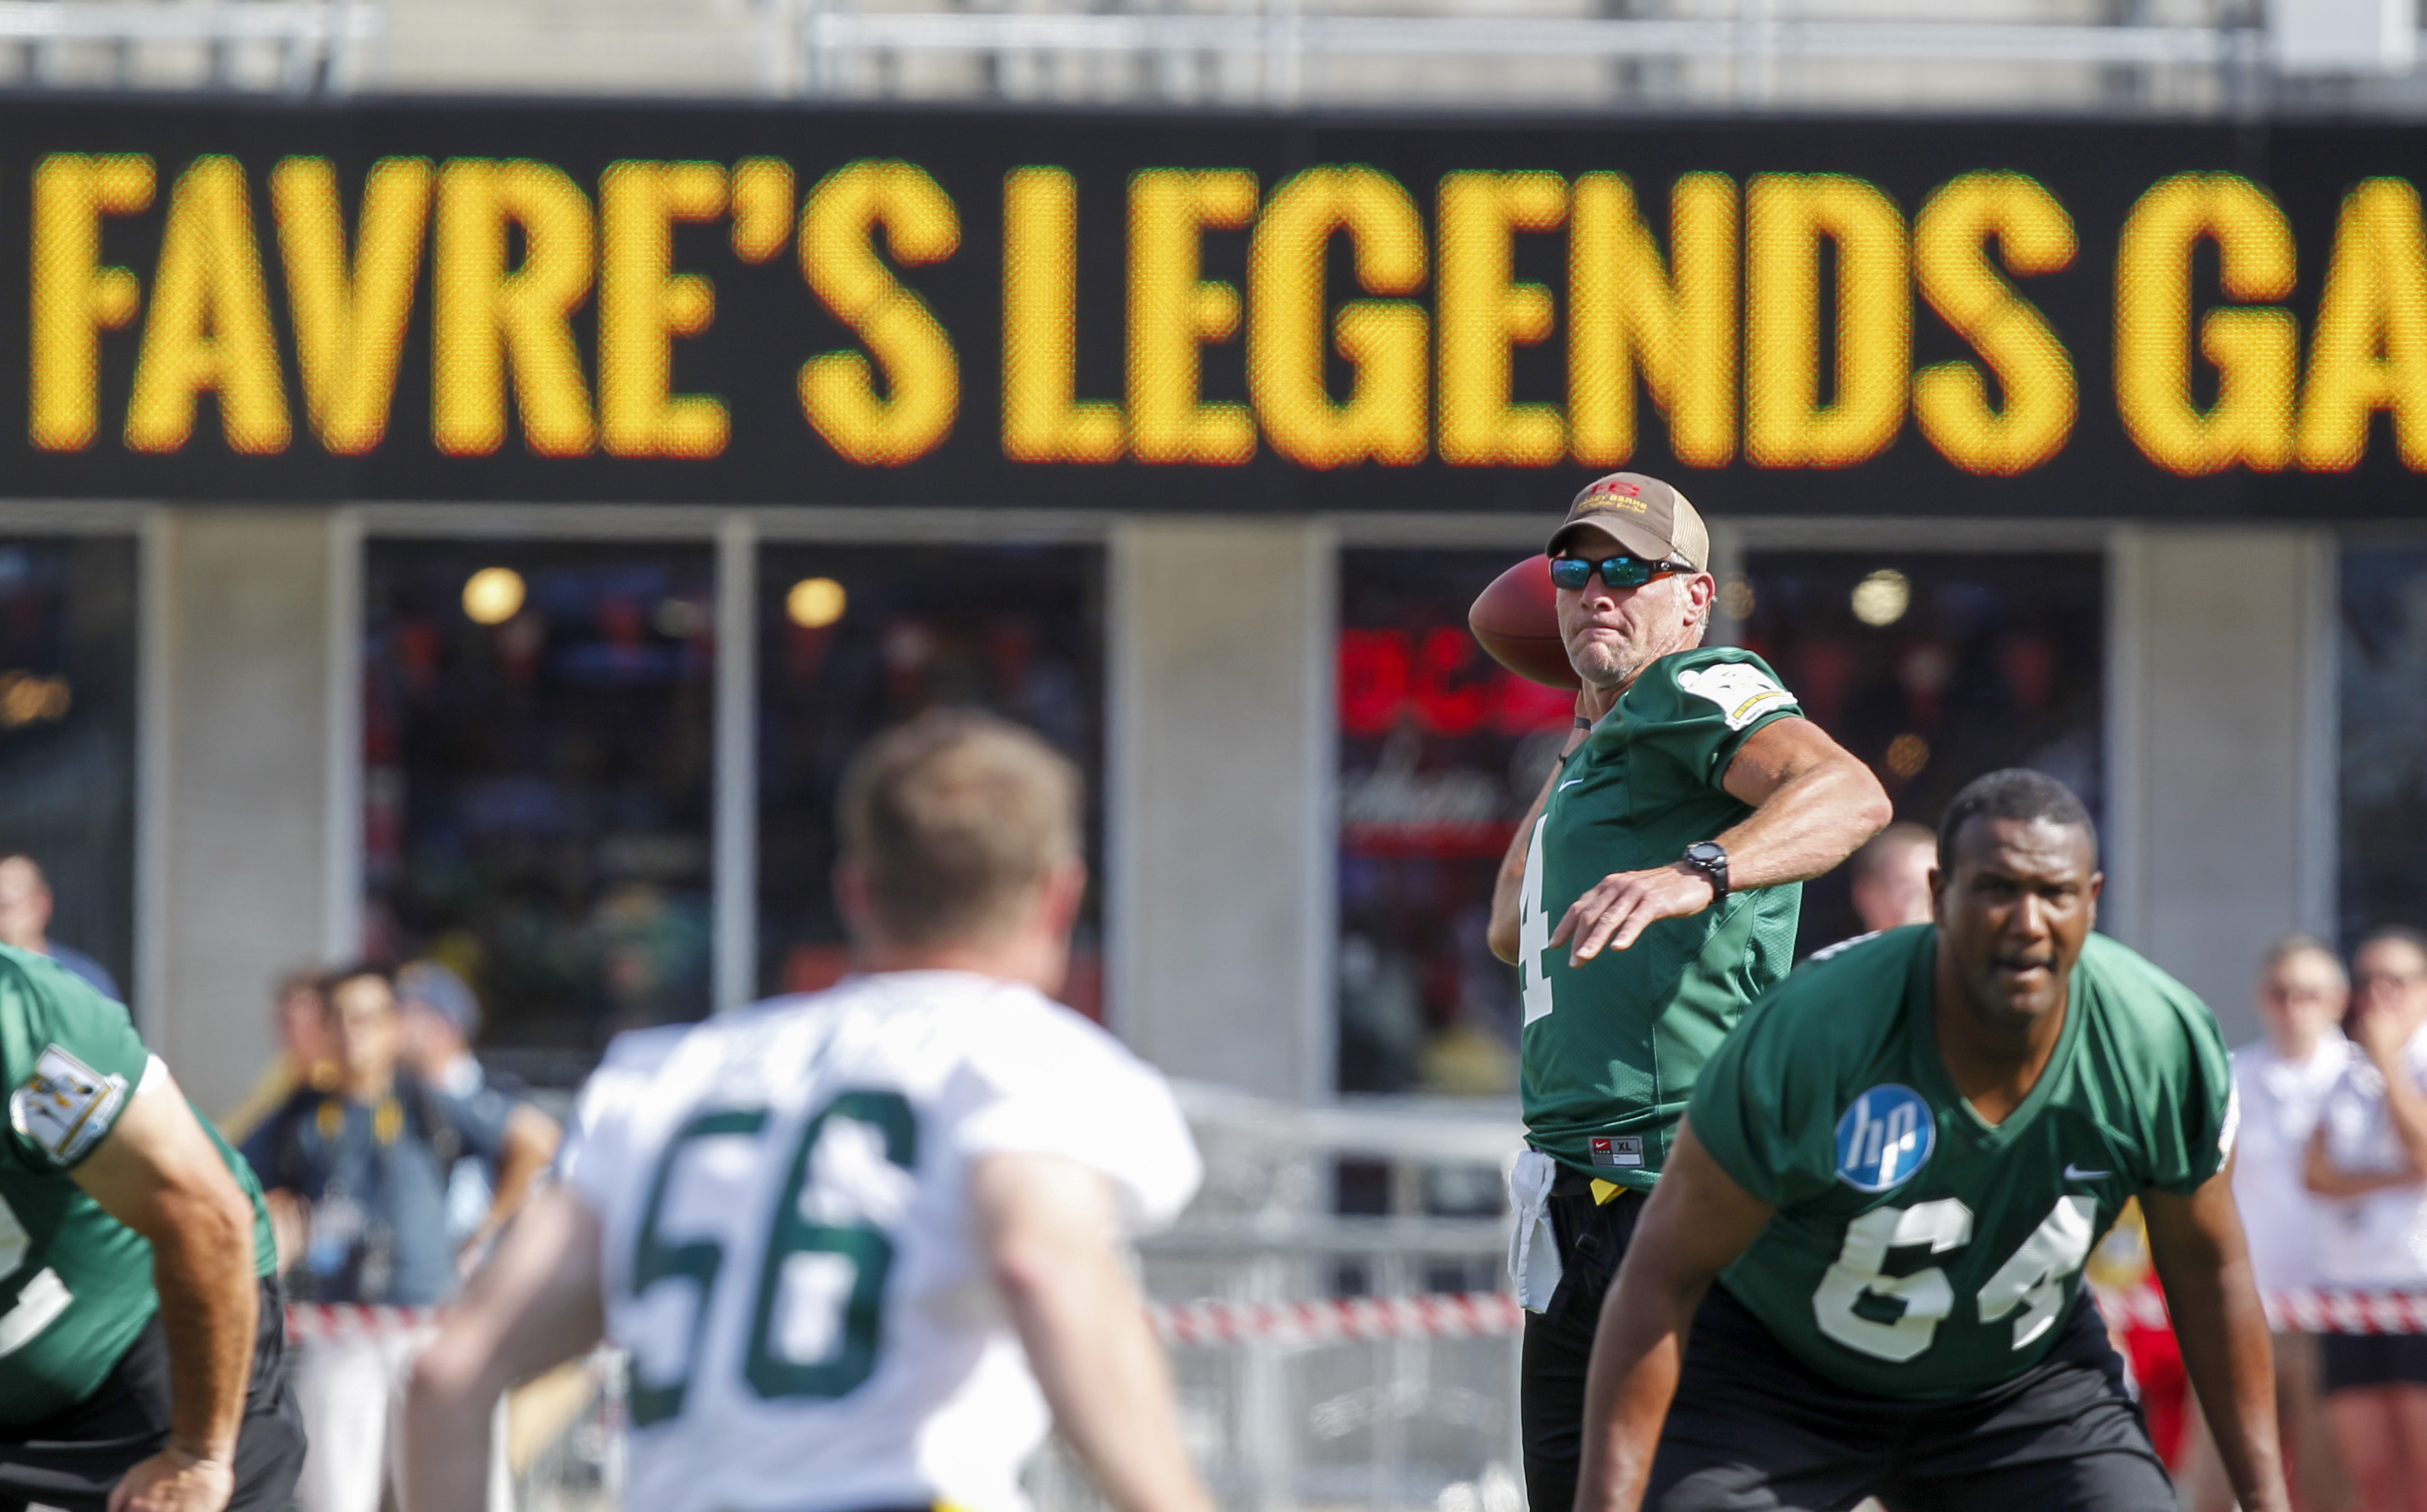 Former Green Bay Parkers quarterback Brett Farve looks to pass during the first half of Brett Favre's Legends Game in a flag football game Sunday, July 19, 2015, at Camp Randall Stadium in Madison, Wis. (AP Photo/Andy Manis)